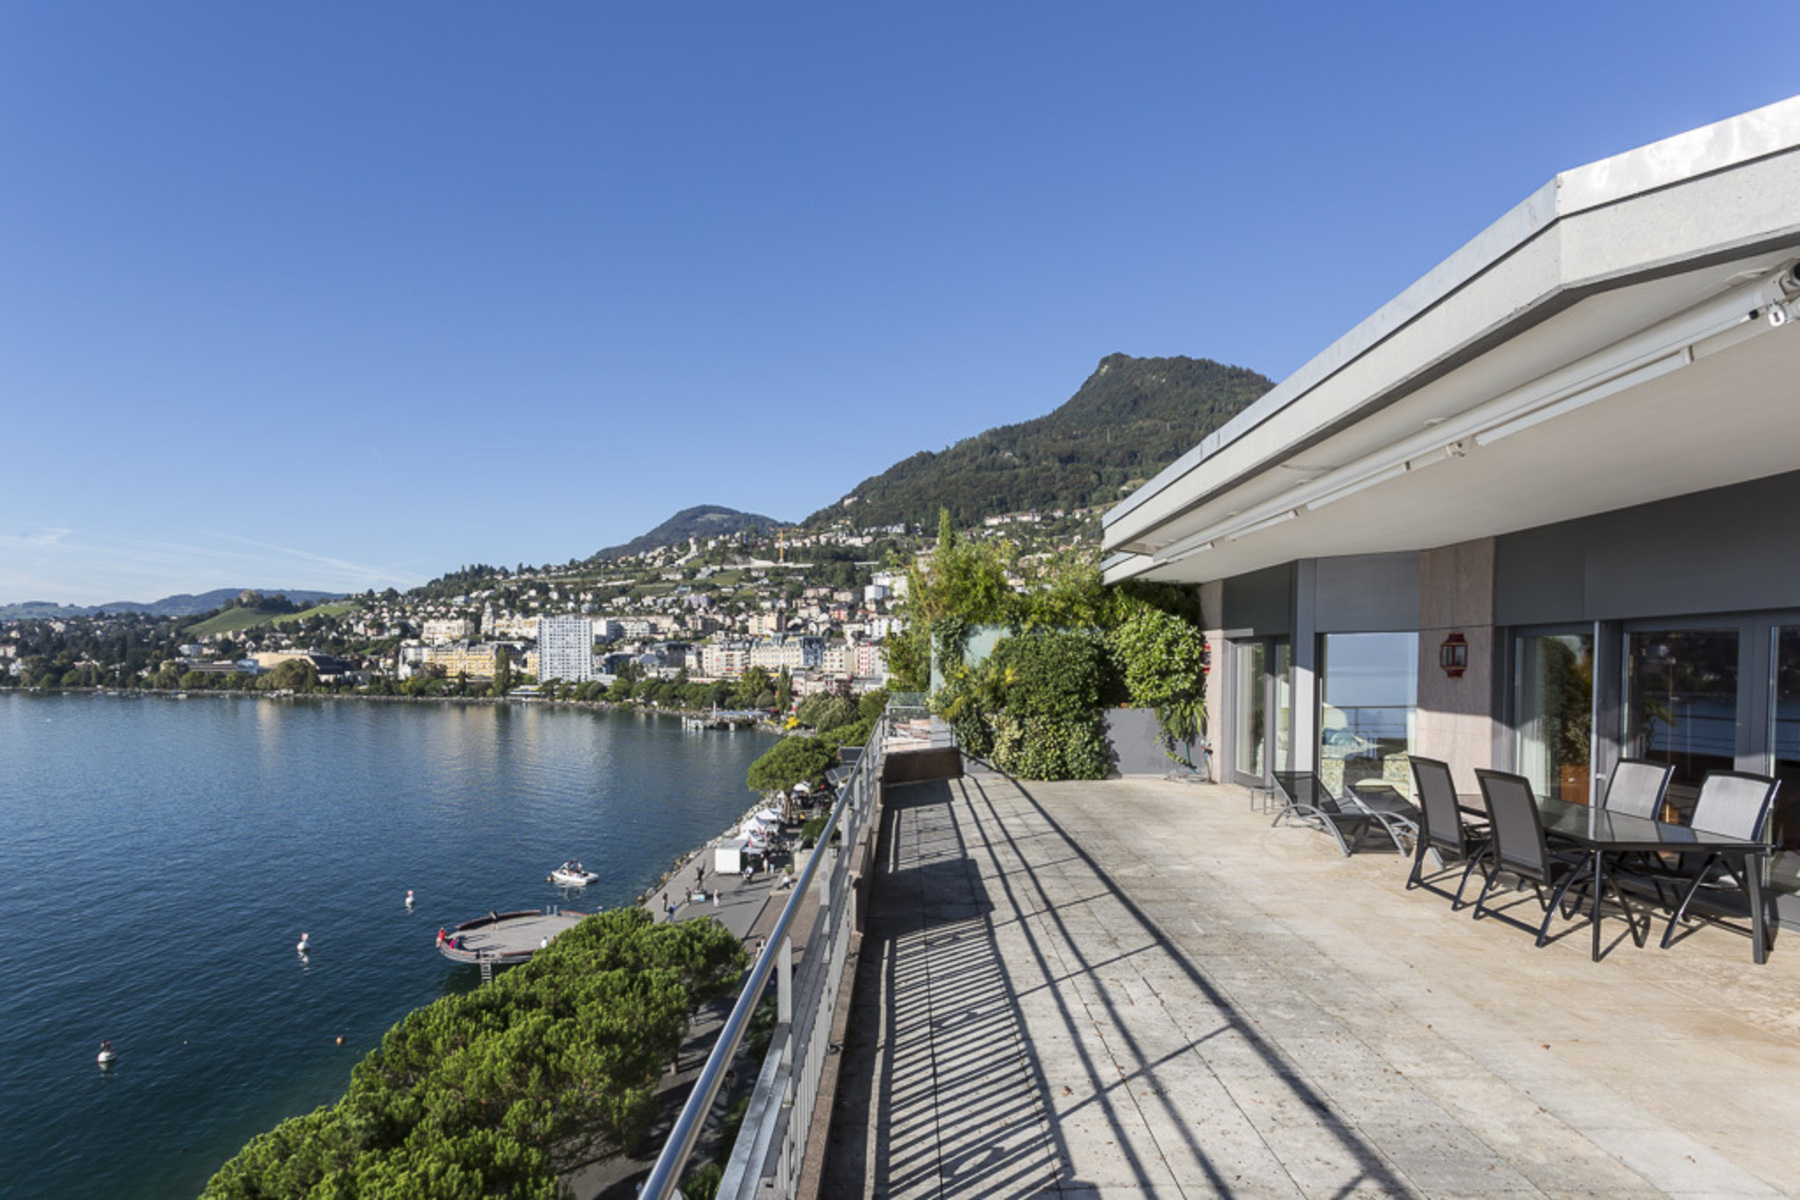 共管式独立产权公寓 为 销售 在 Splendid deluxe waterfront 4.5 room loft apartment Montreux 蒙特勒, 1820 瑞士